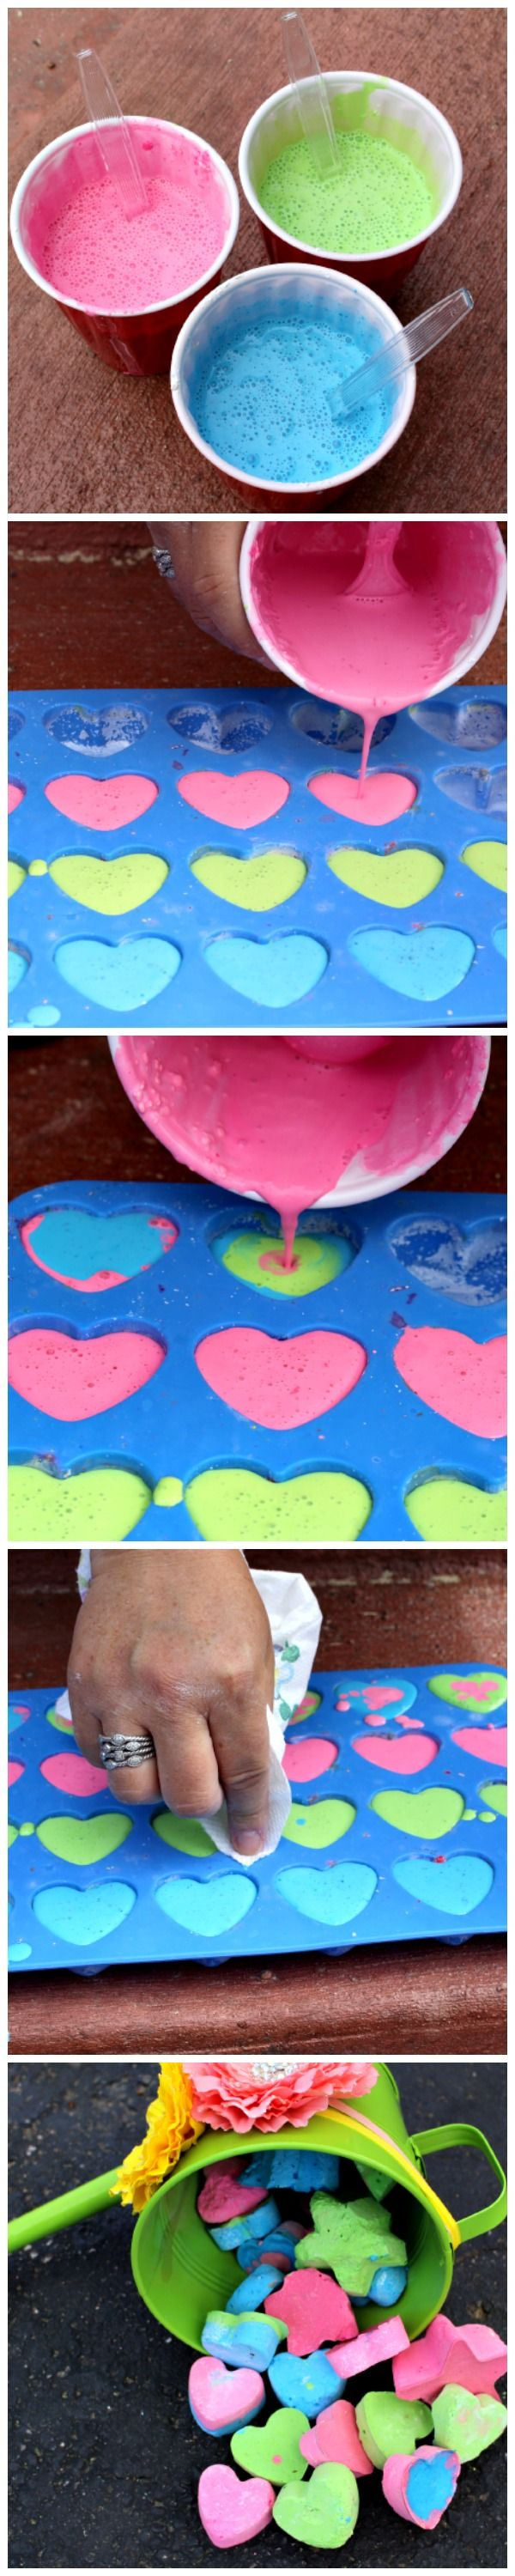 DIY Sidewalk Chalk - 3 ingredients!!: Party Favors, Summer Crafts, Kids Diy, Kids Parties Favors, Kids Crafts, Diy Sidewalks, Sidewalk Chalk, Spend Hour, Sidewalks Chalk